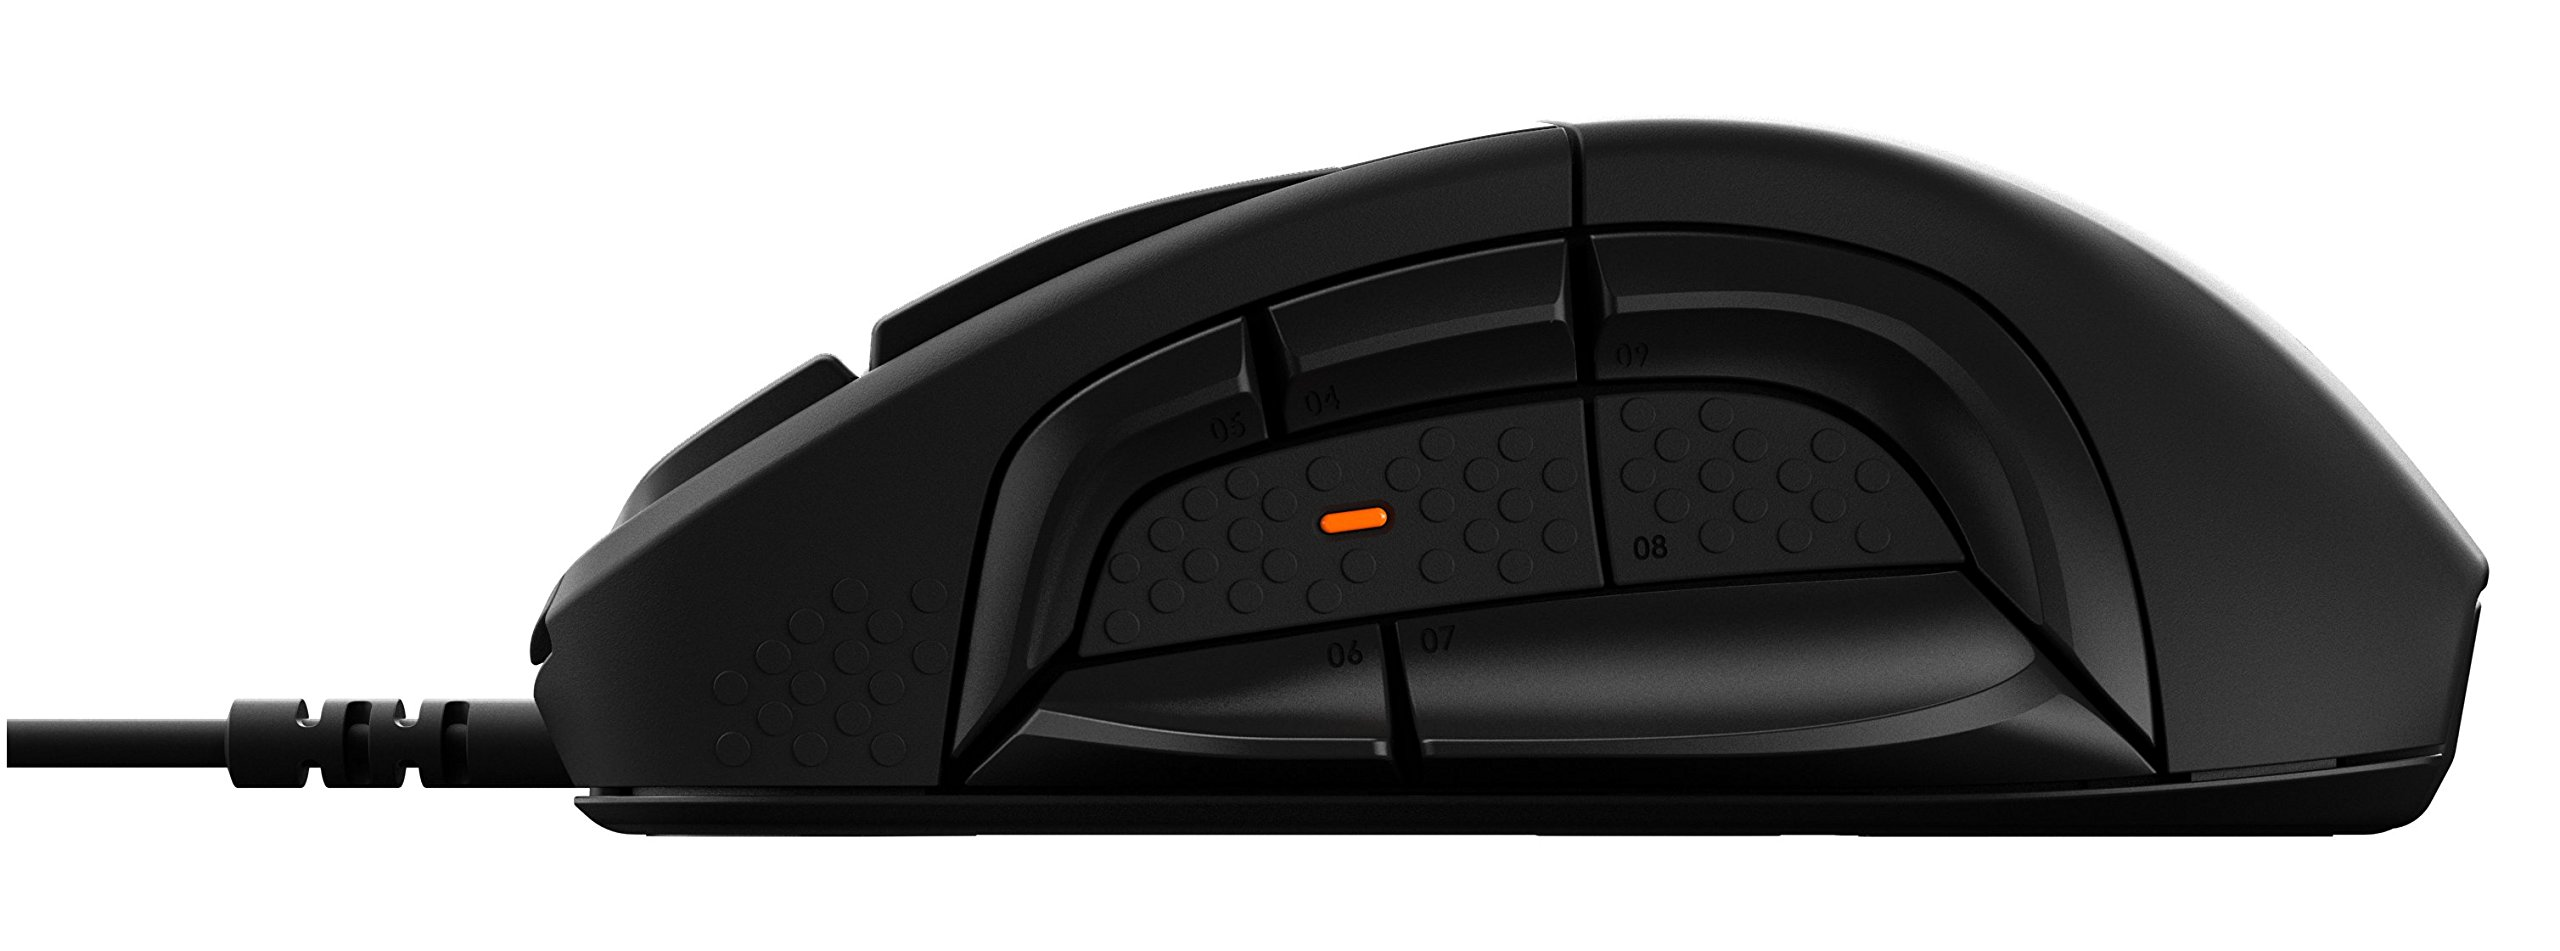 SteelSeries Rival 500 MMO/MOBA 15-Button Programmable Gaming Mouse - 16,000 CPI by SteelSeries (Image #3)